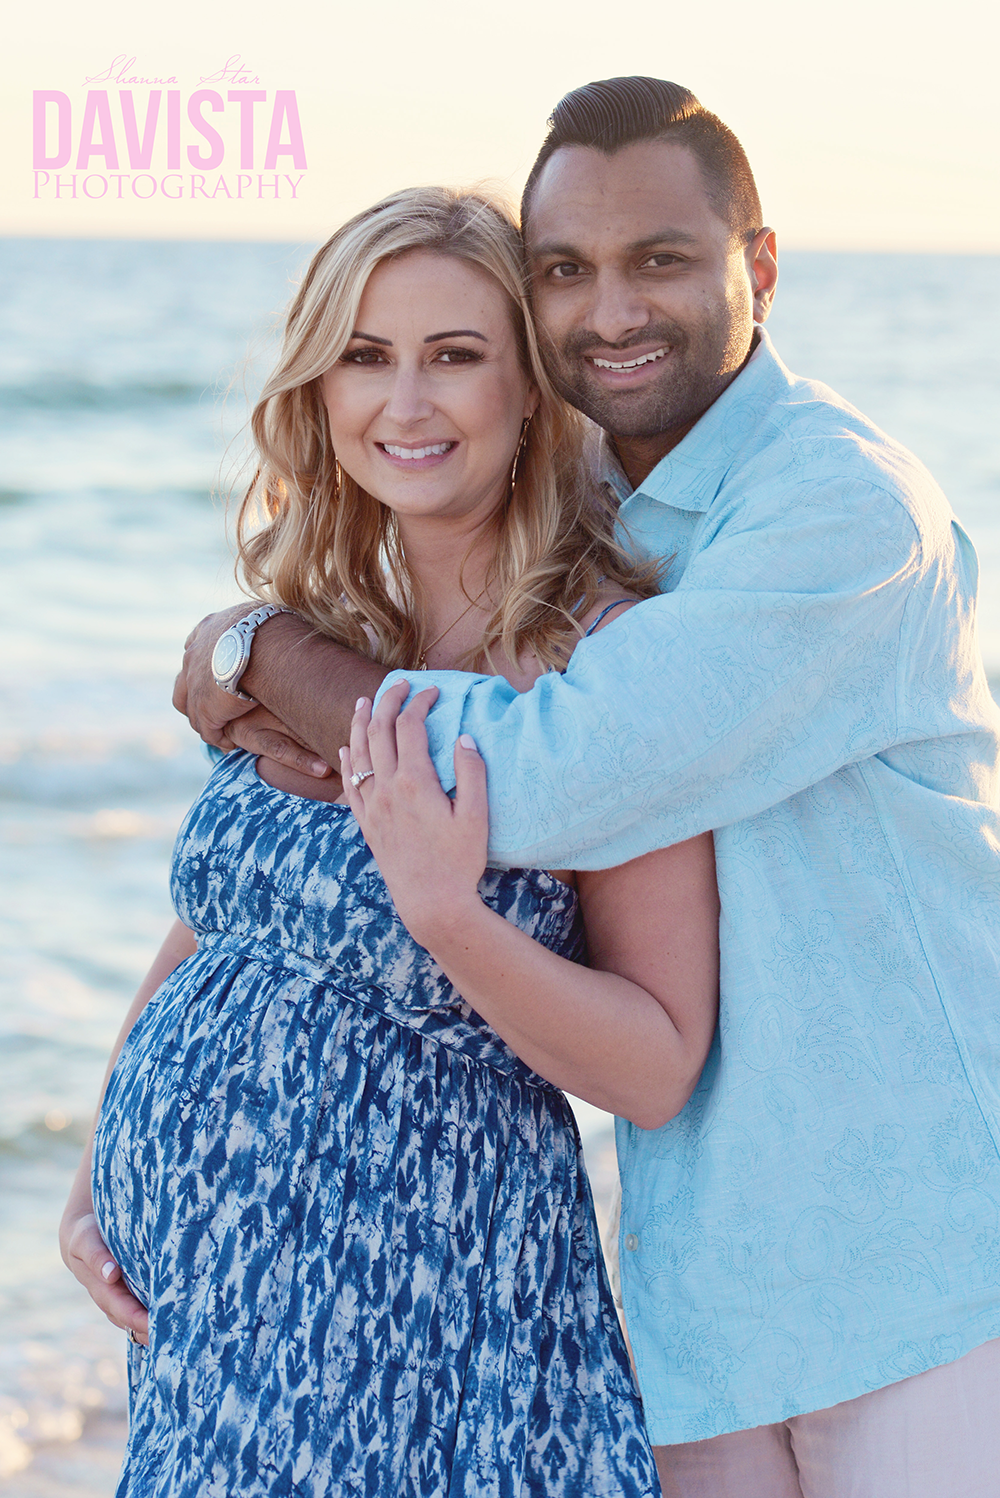 Panama City beach maternity photoshoot